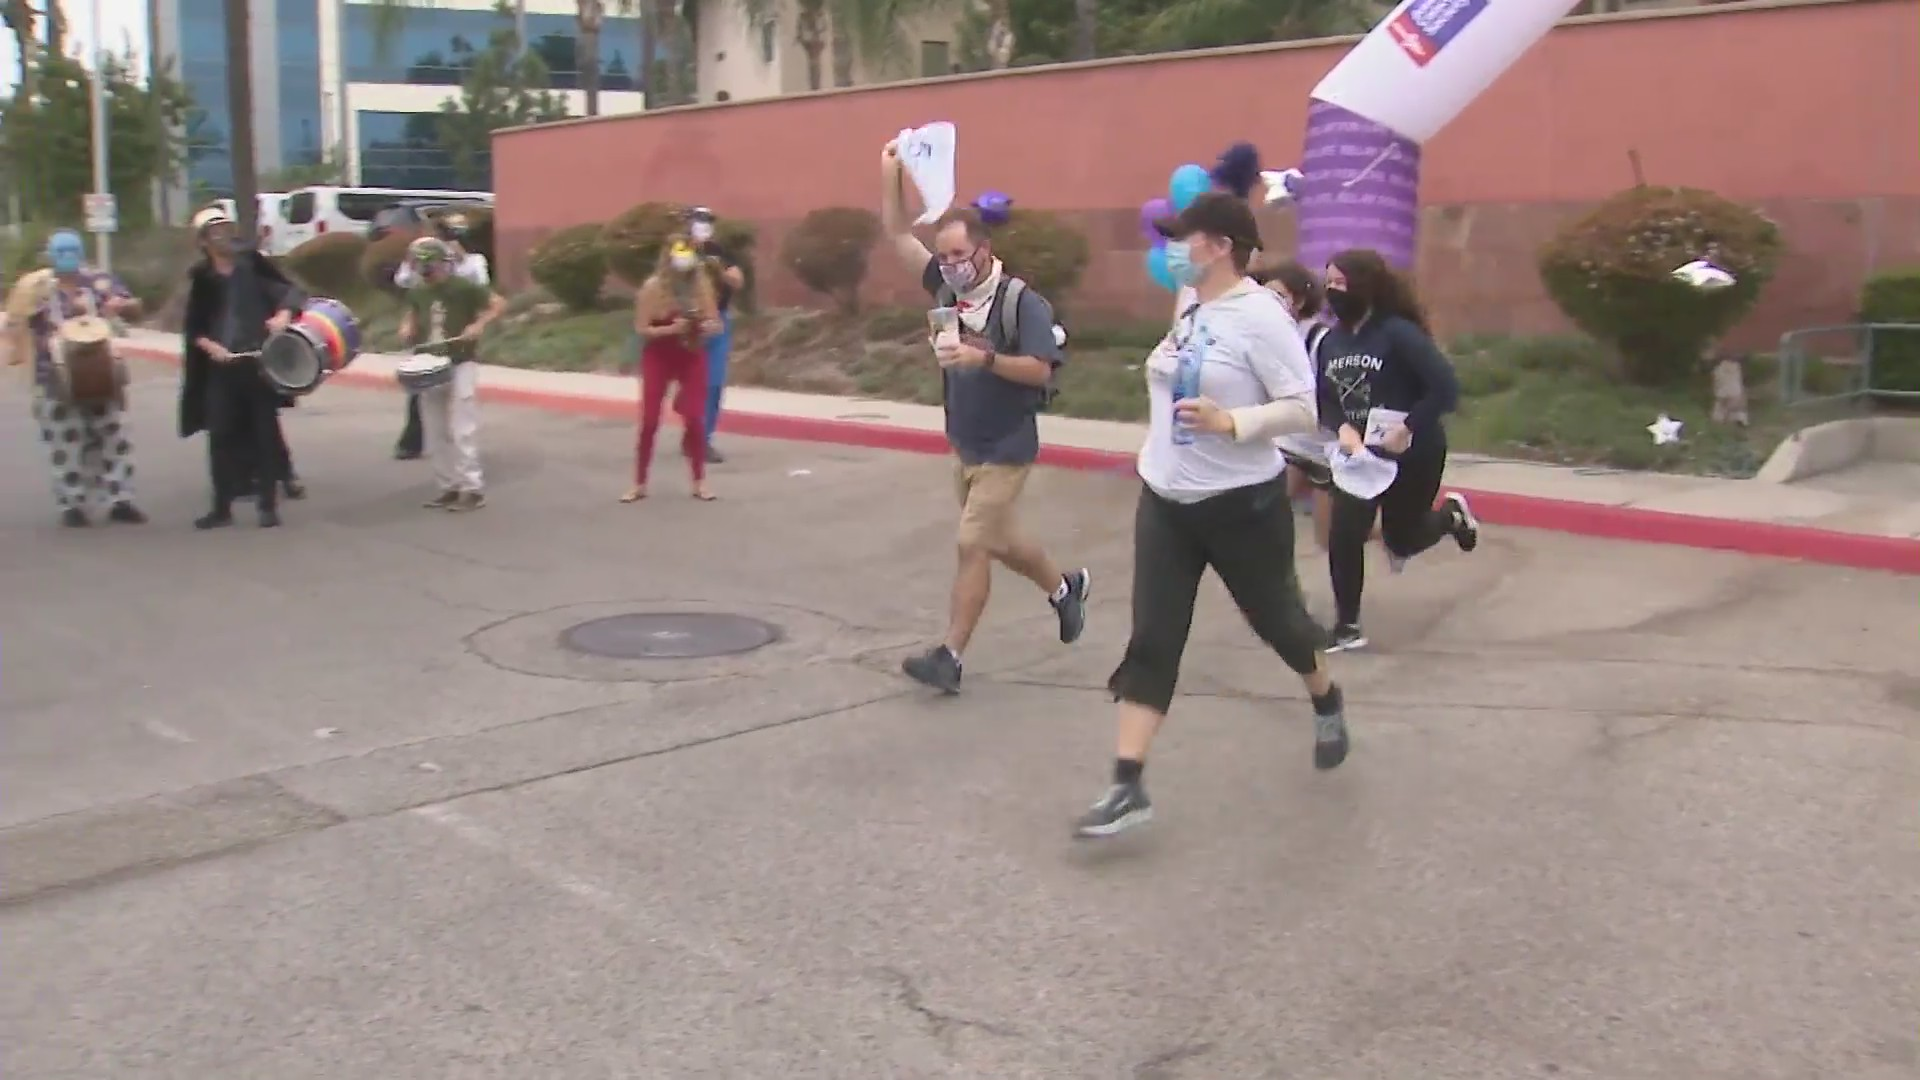 People participate in a cancer fundraiser on Sept. 26, 2020, in Burbank. (KTLA)